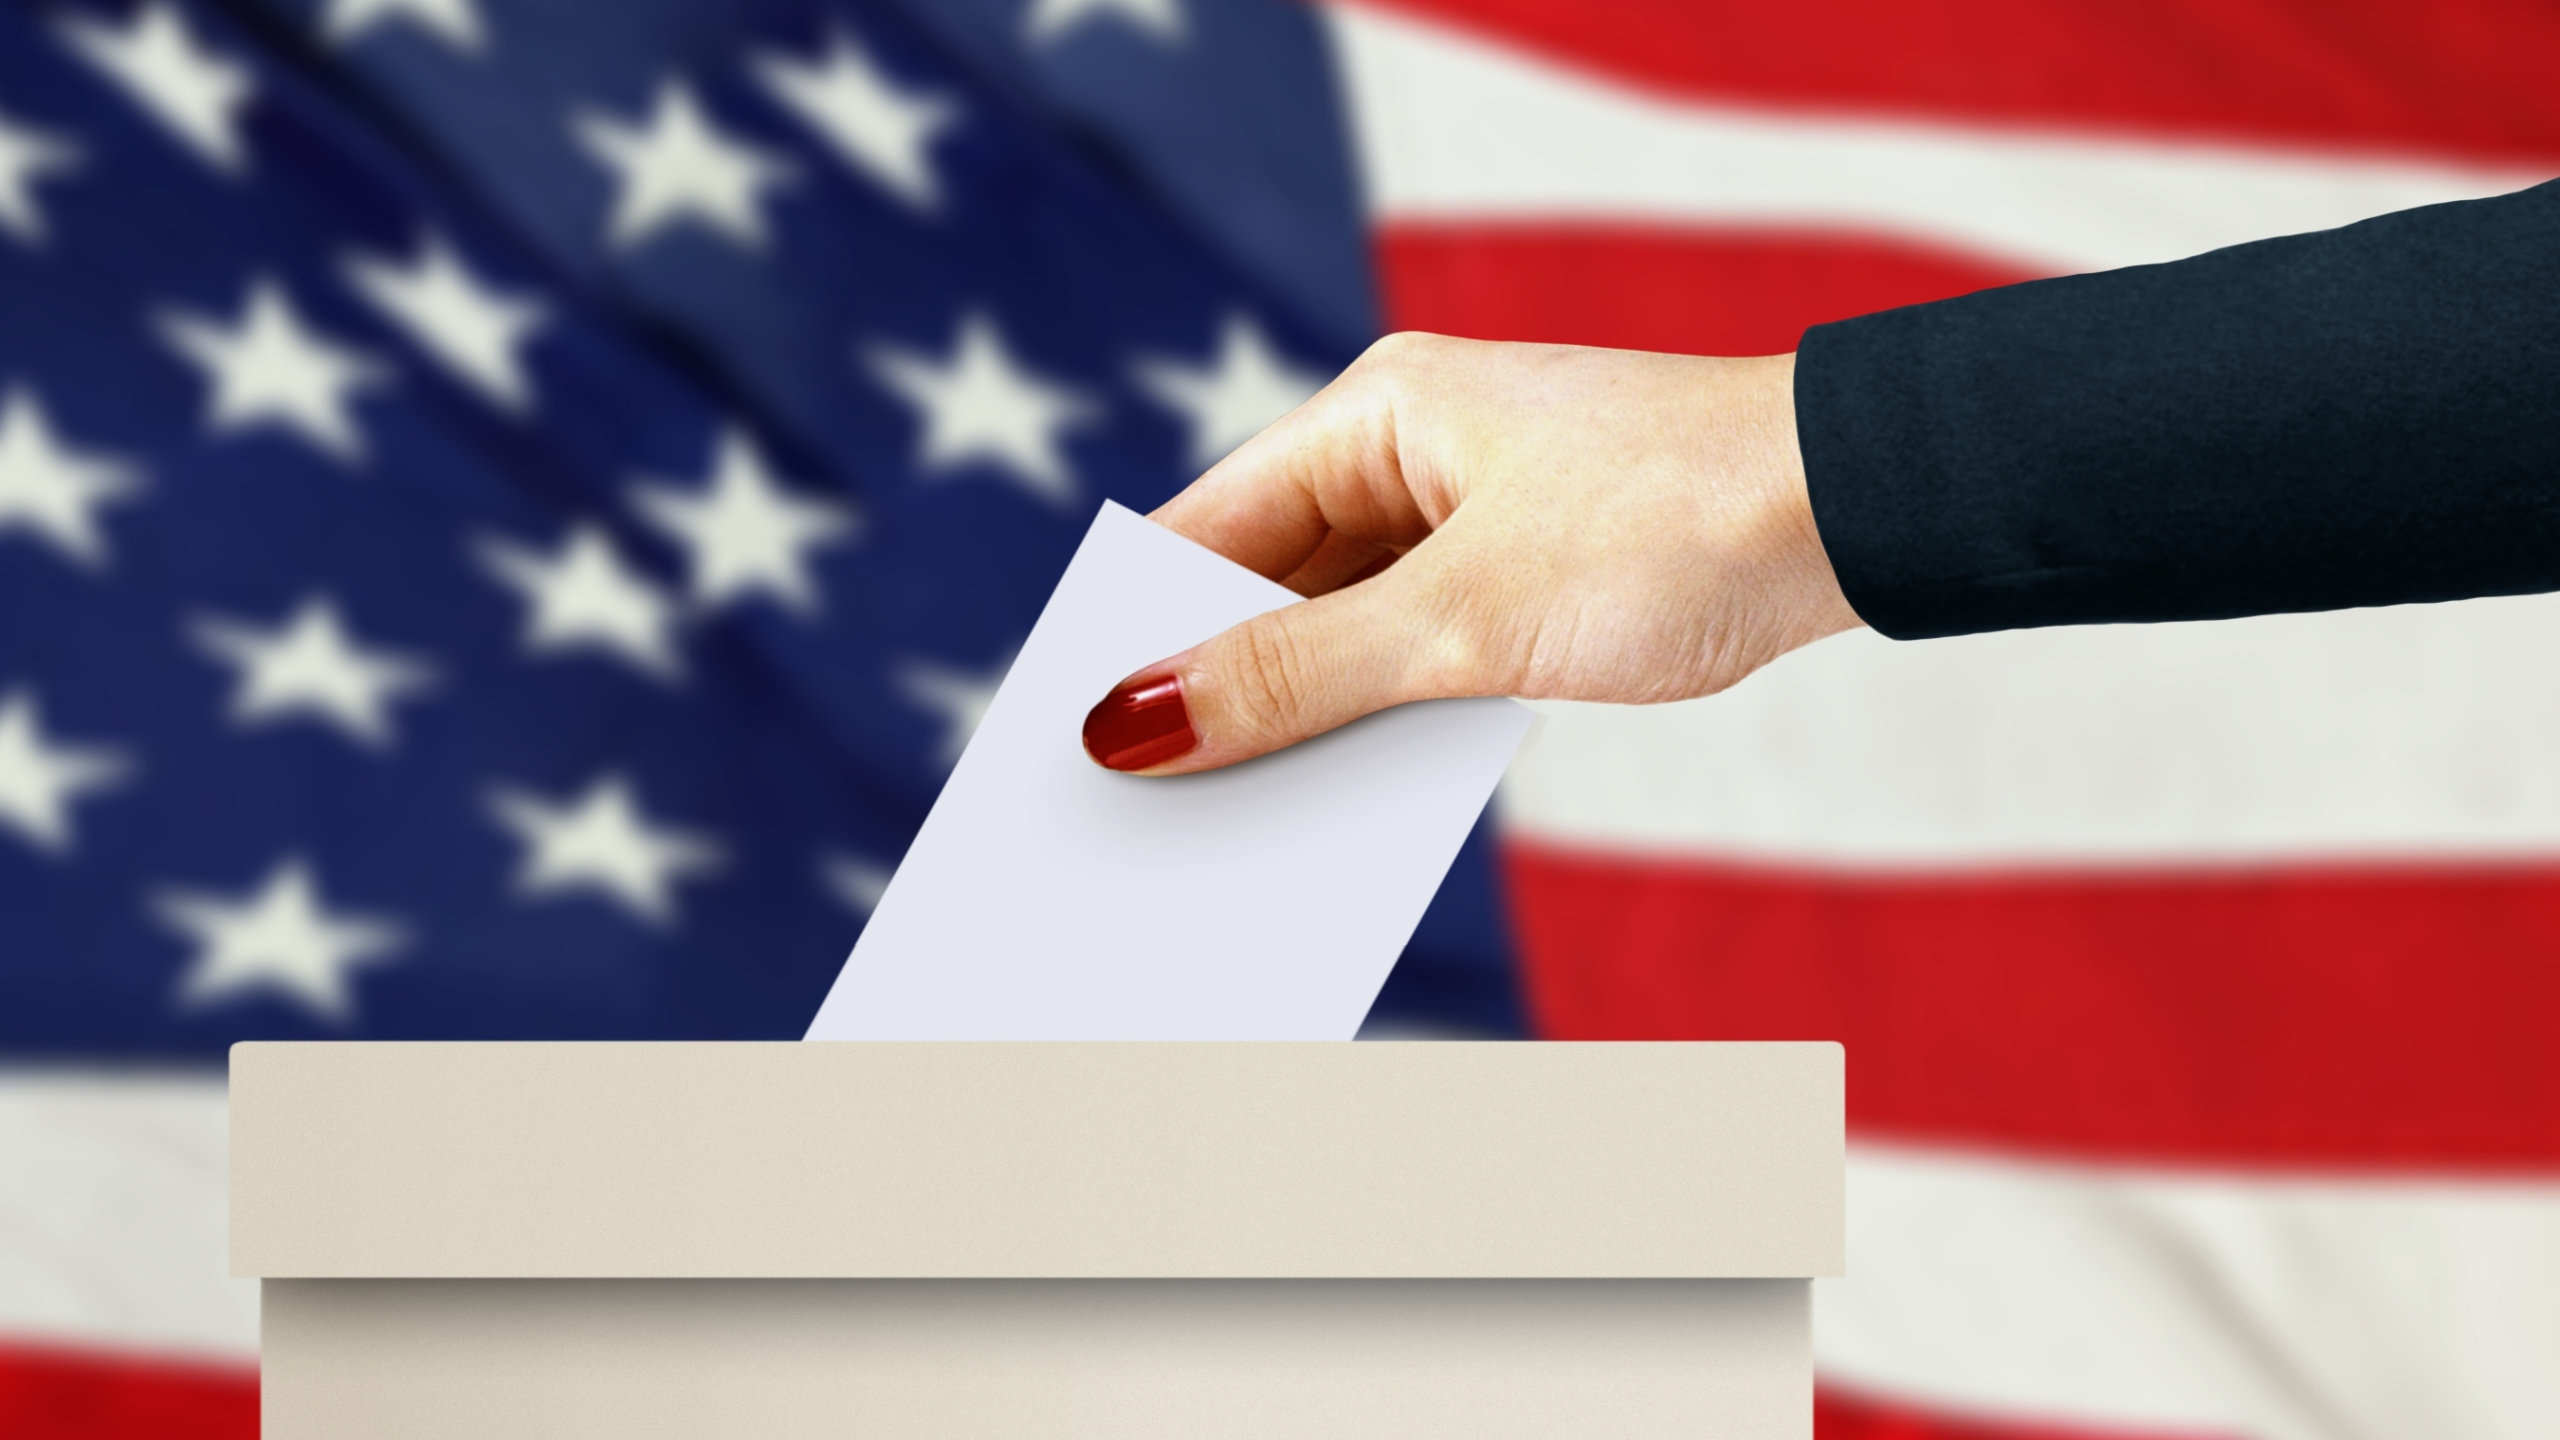 Posting ballot selfies: Personal choice or illegalact?